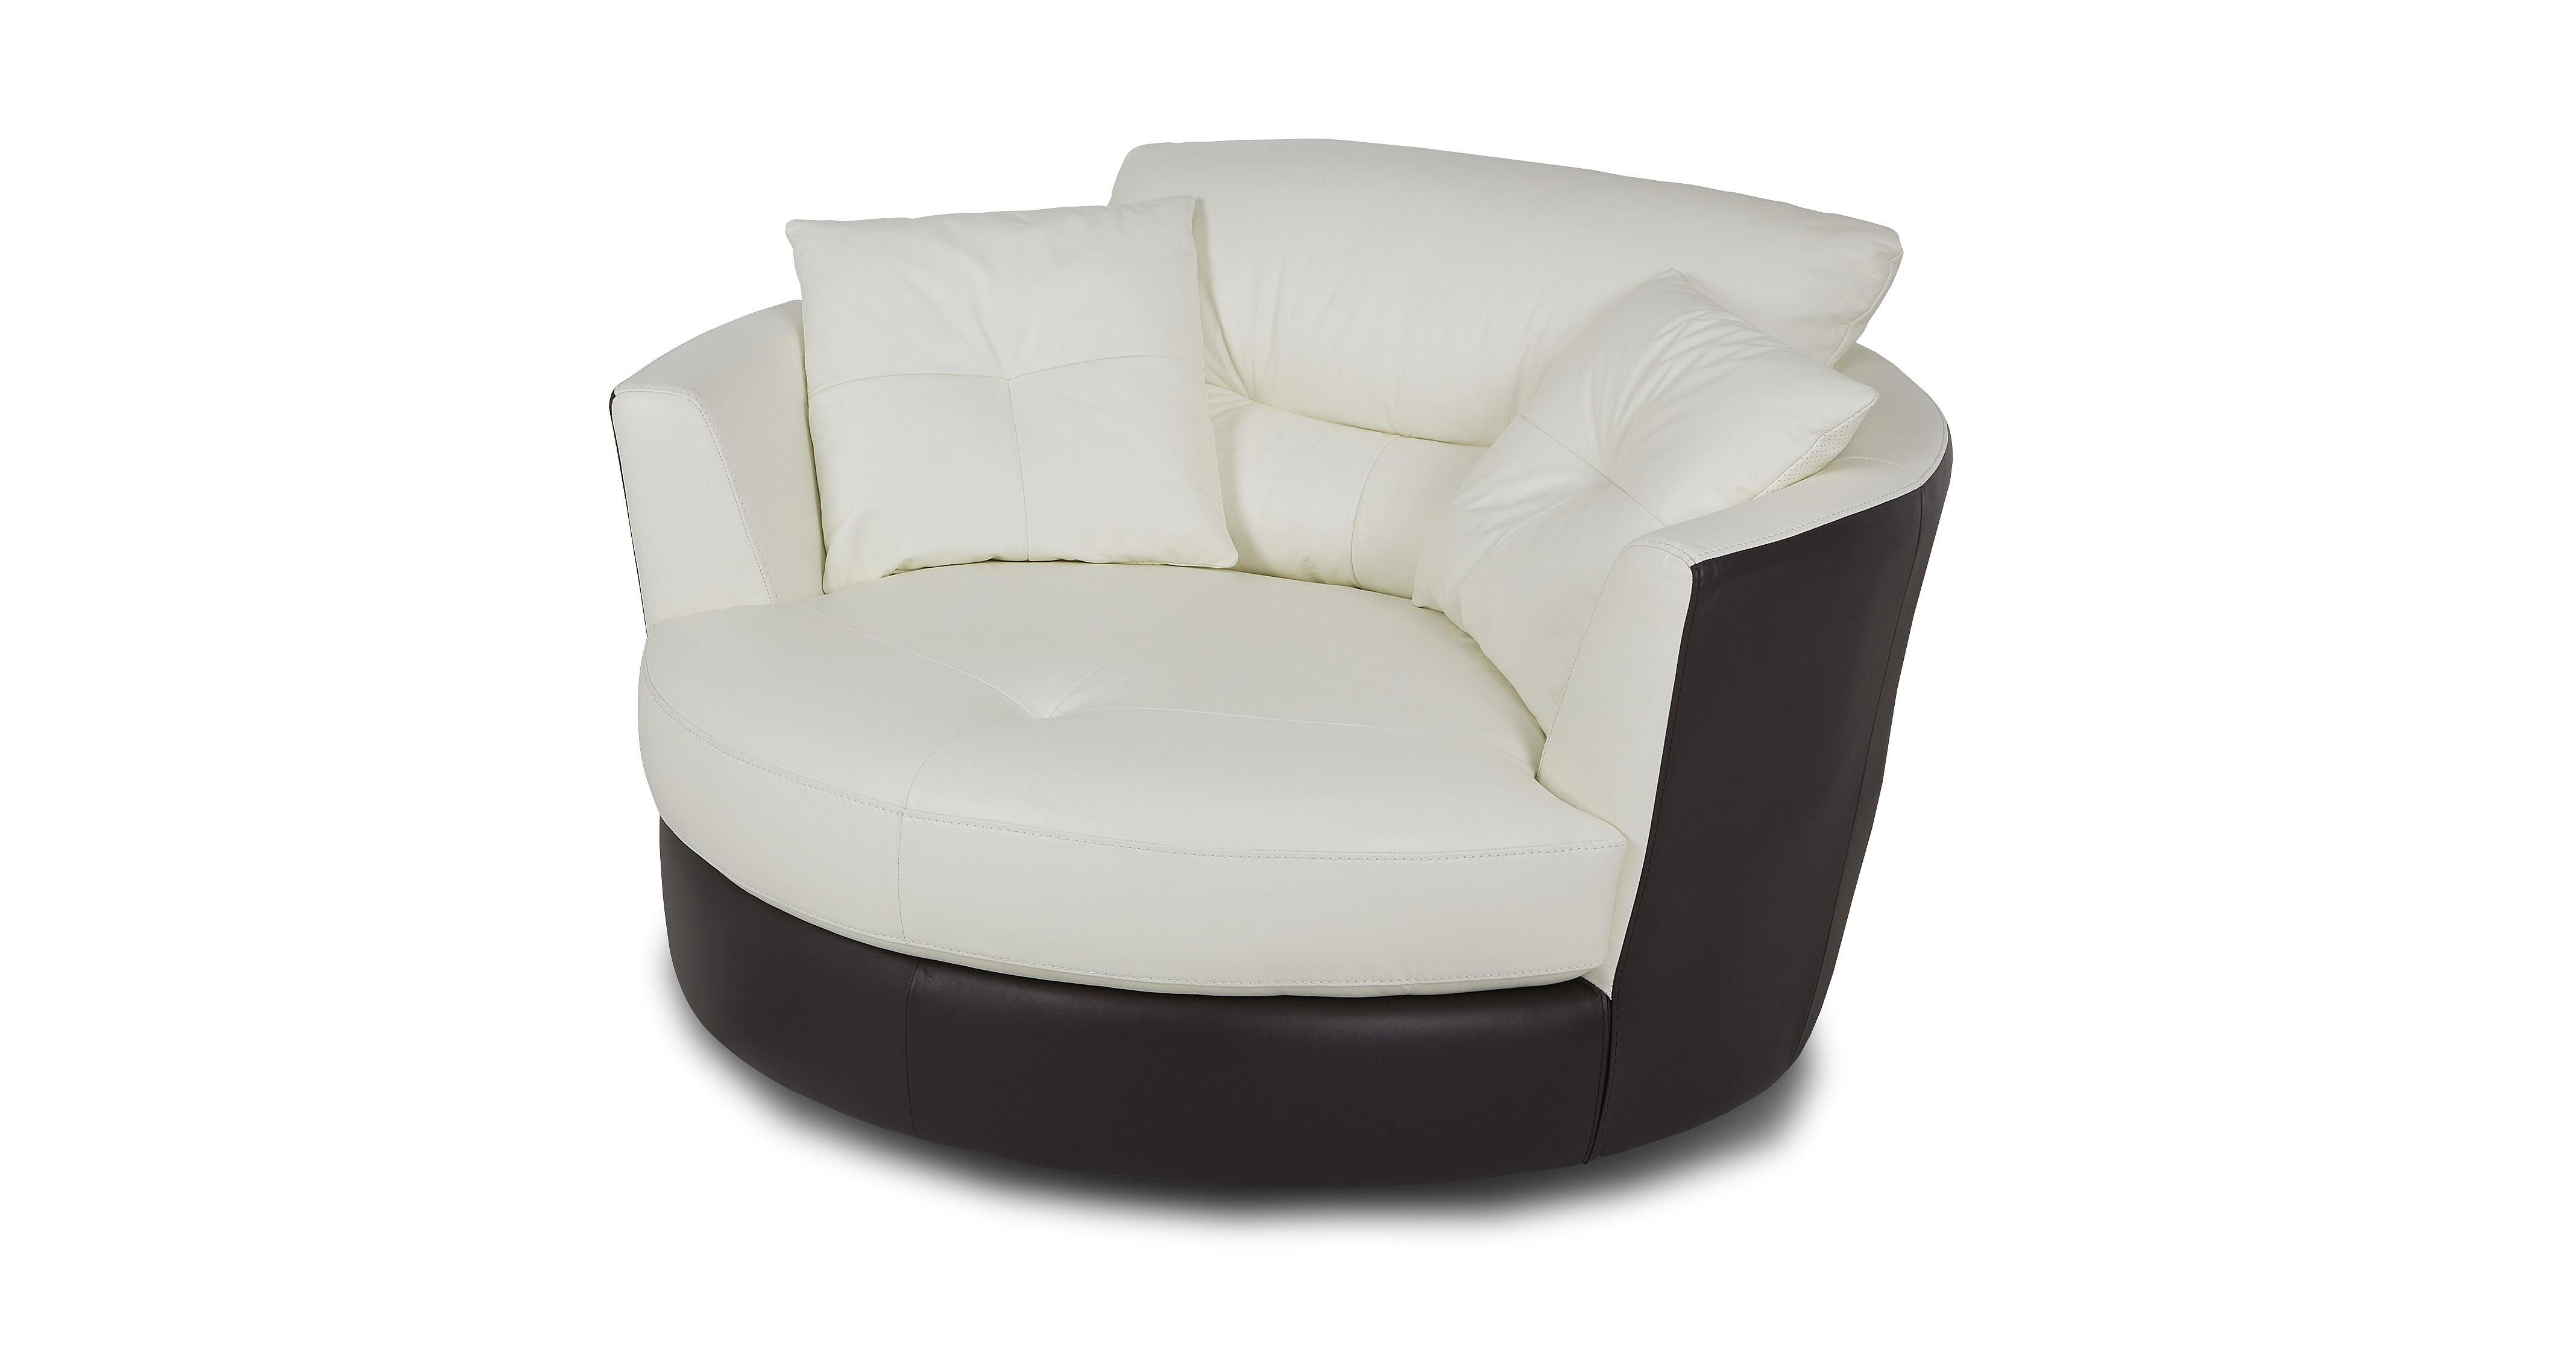 Dfs Polar Snow Leather Set Includes Large Swivel Chair